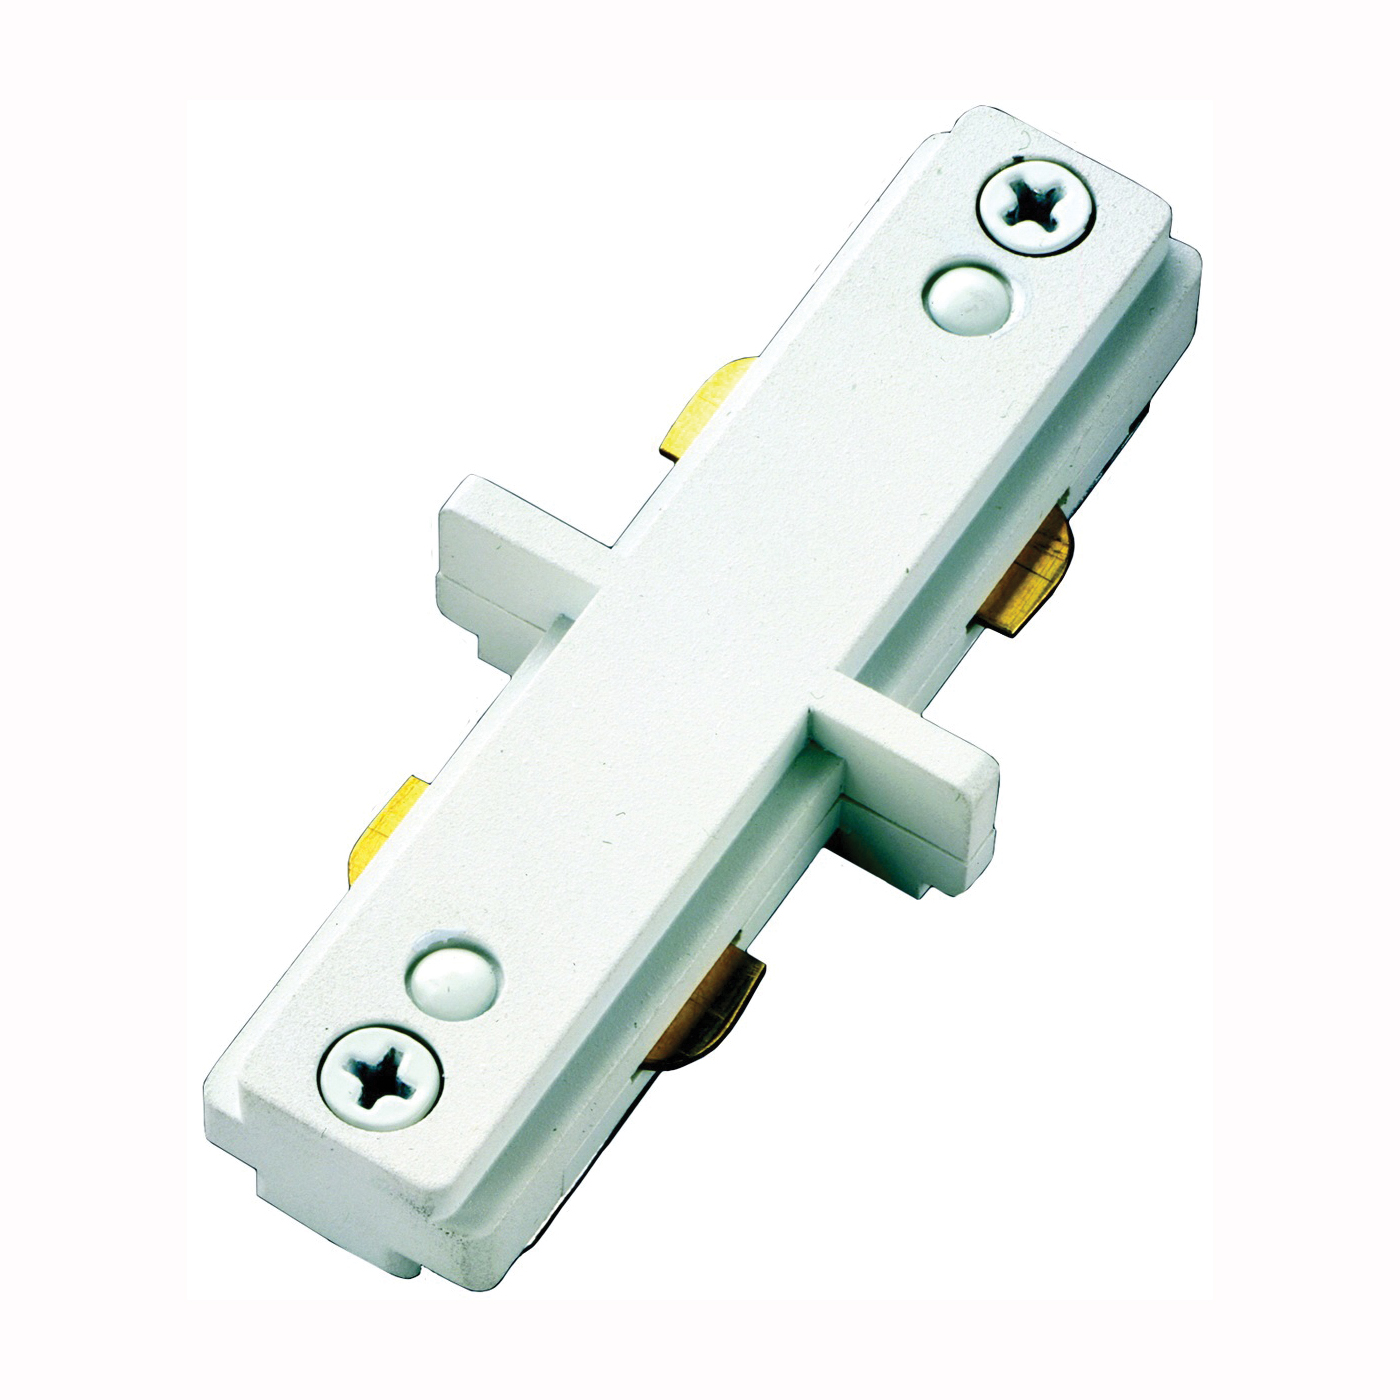 Picture of Eaton Lighting LZR212P Track Light Connector, White, For: Lazer Track Lamp holders and Halo Power-Trac Lamp holders